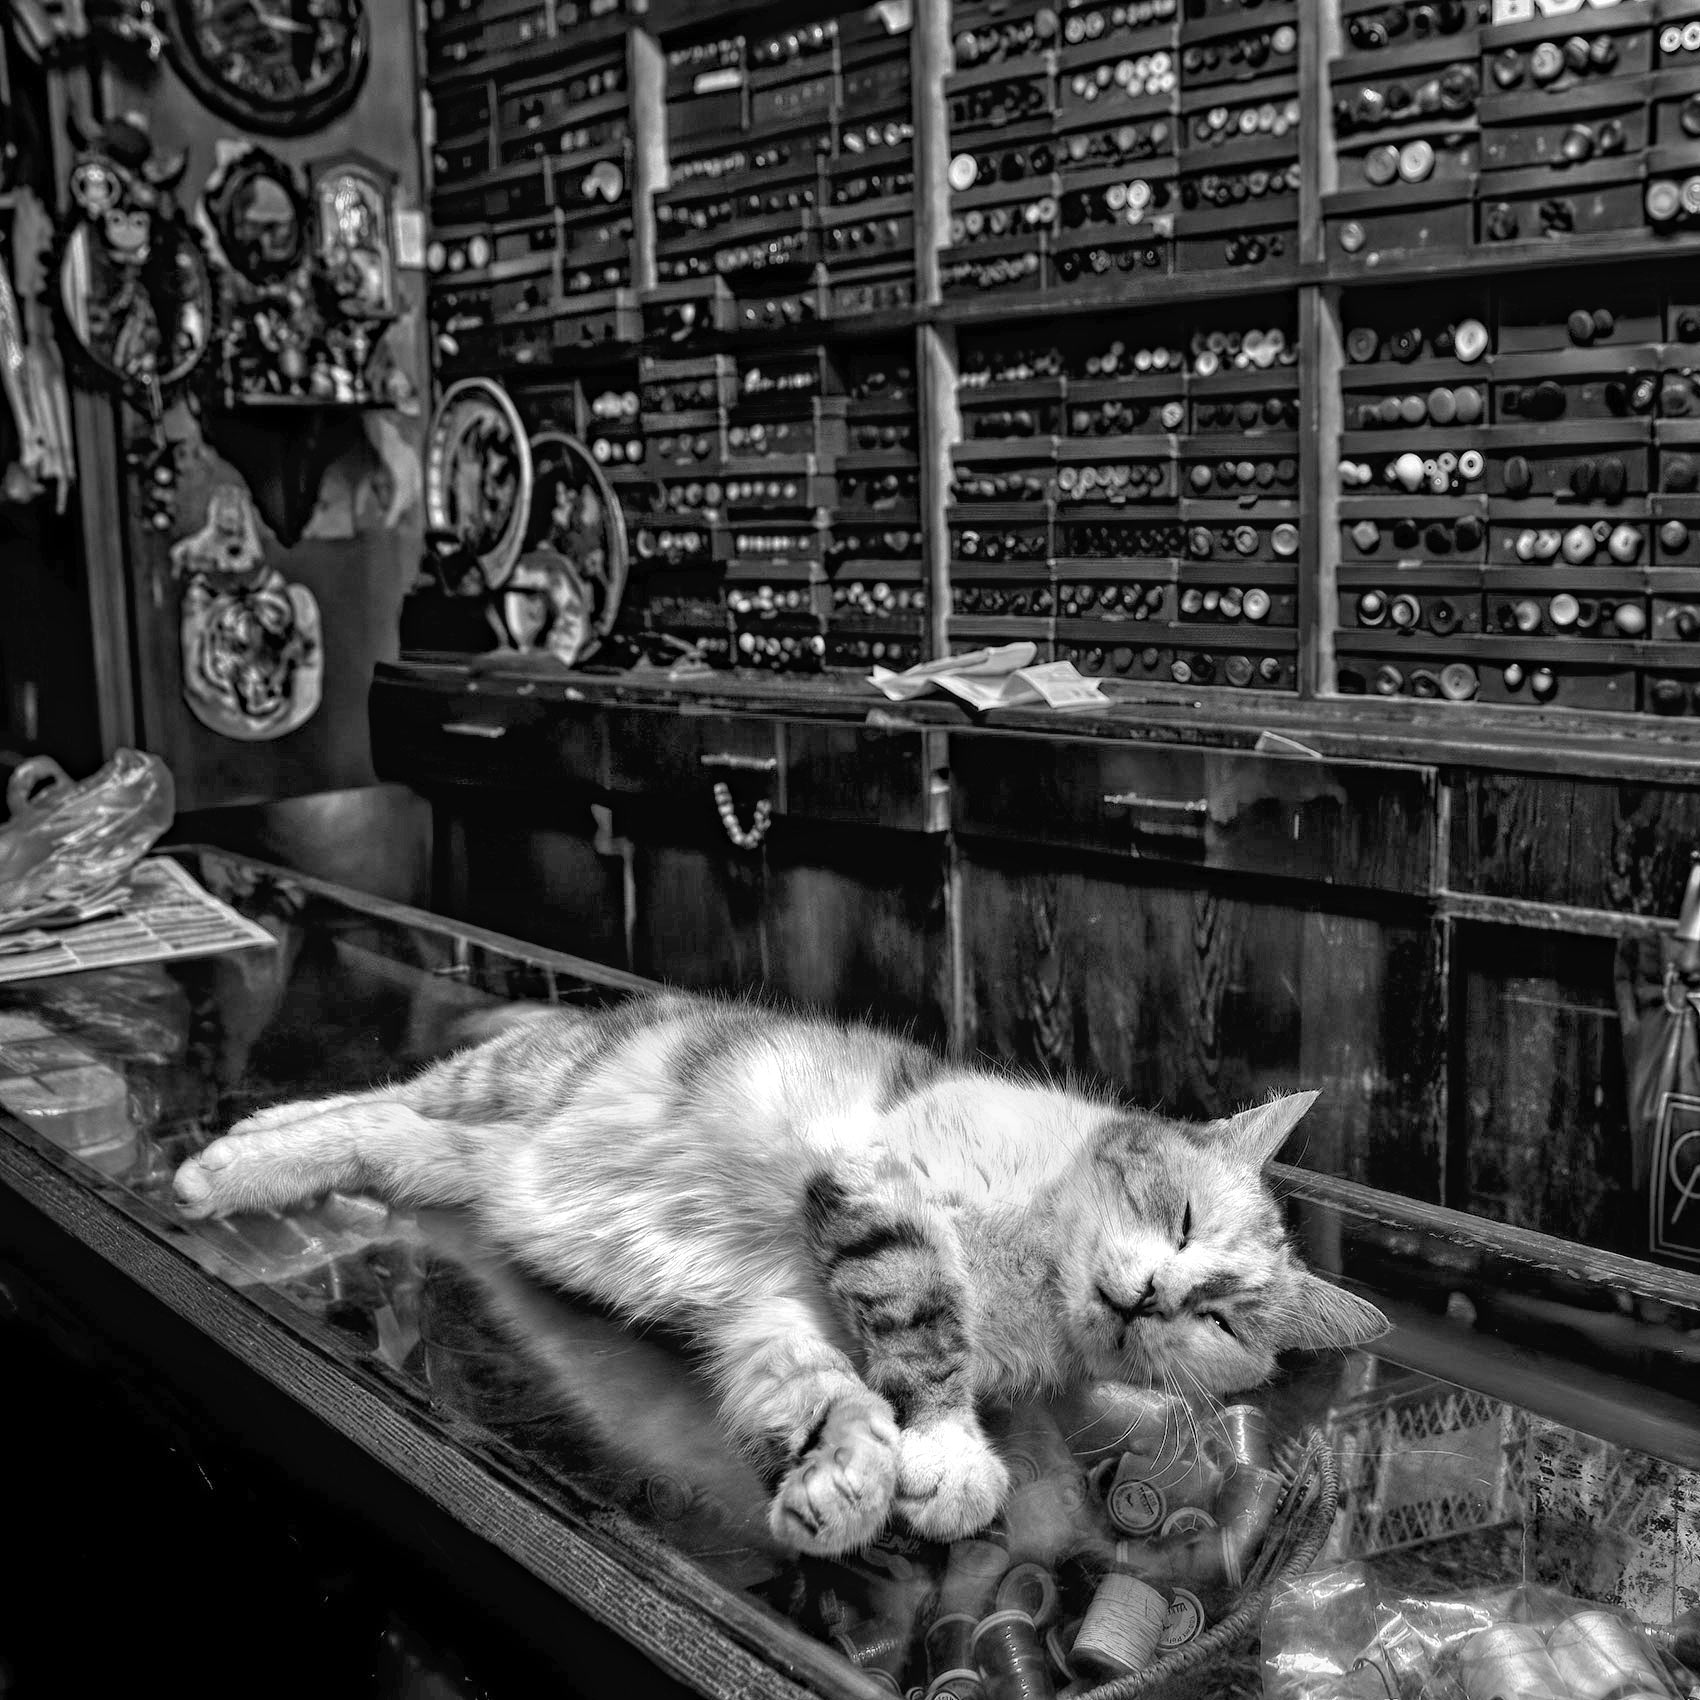 a-cat-sleeping-on-a-store-counter-in-an-istanbul-shop-near-istiklal-caddesi